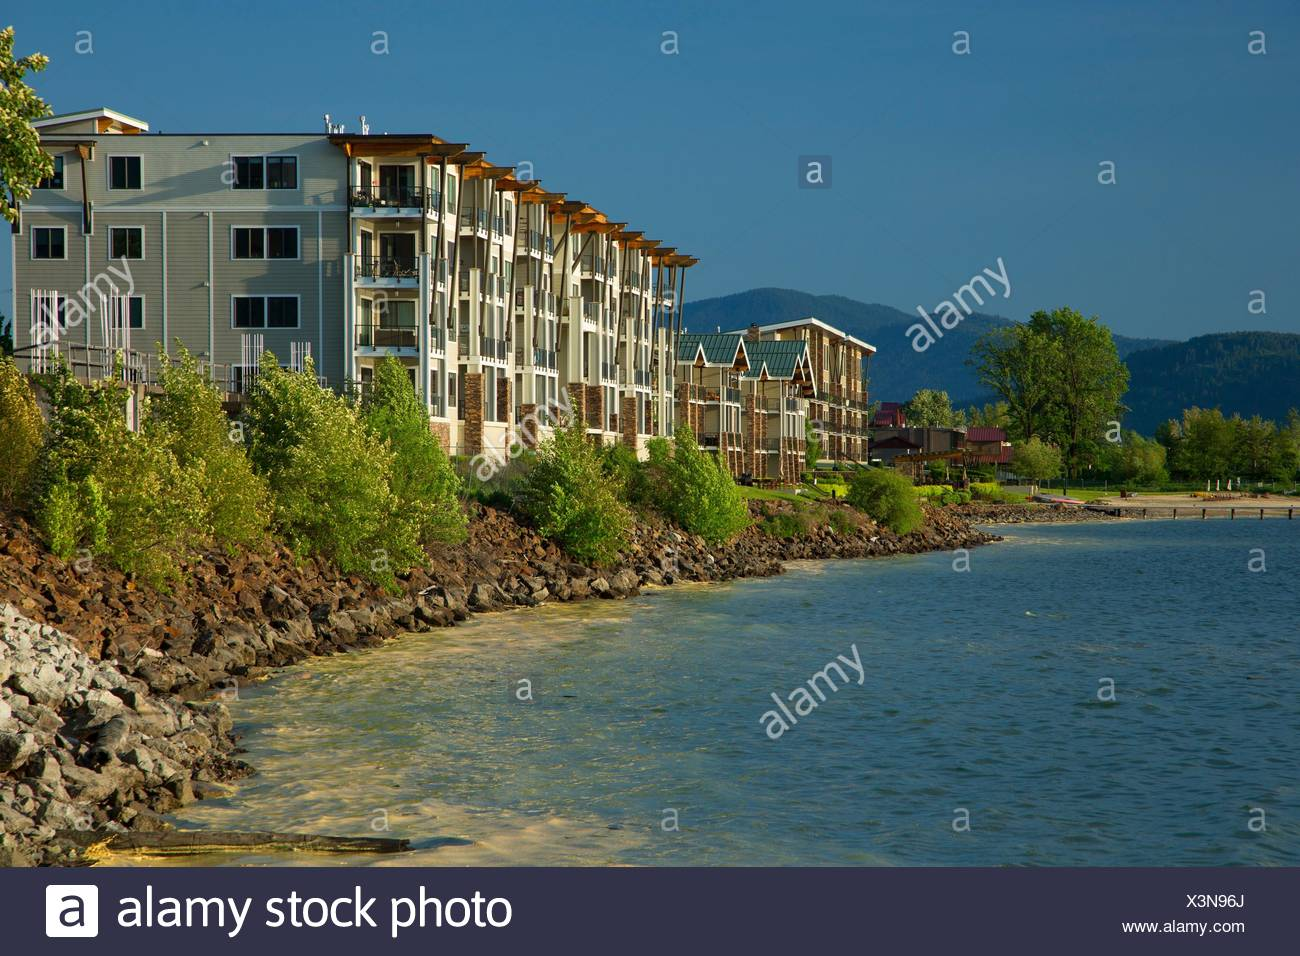 Lake Pend Oreille waterfront from Pend dâ.Oreille Bay Trail, Sandpoint, Idaho. - Stock Image